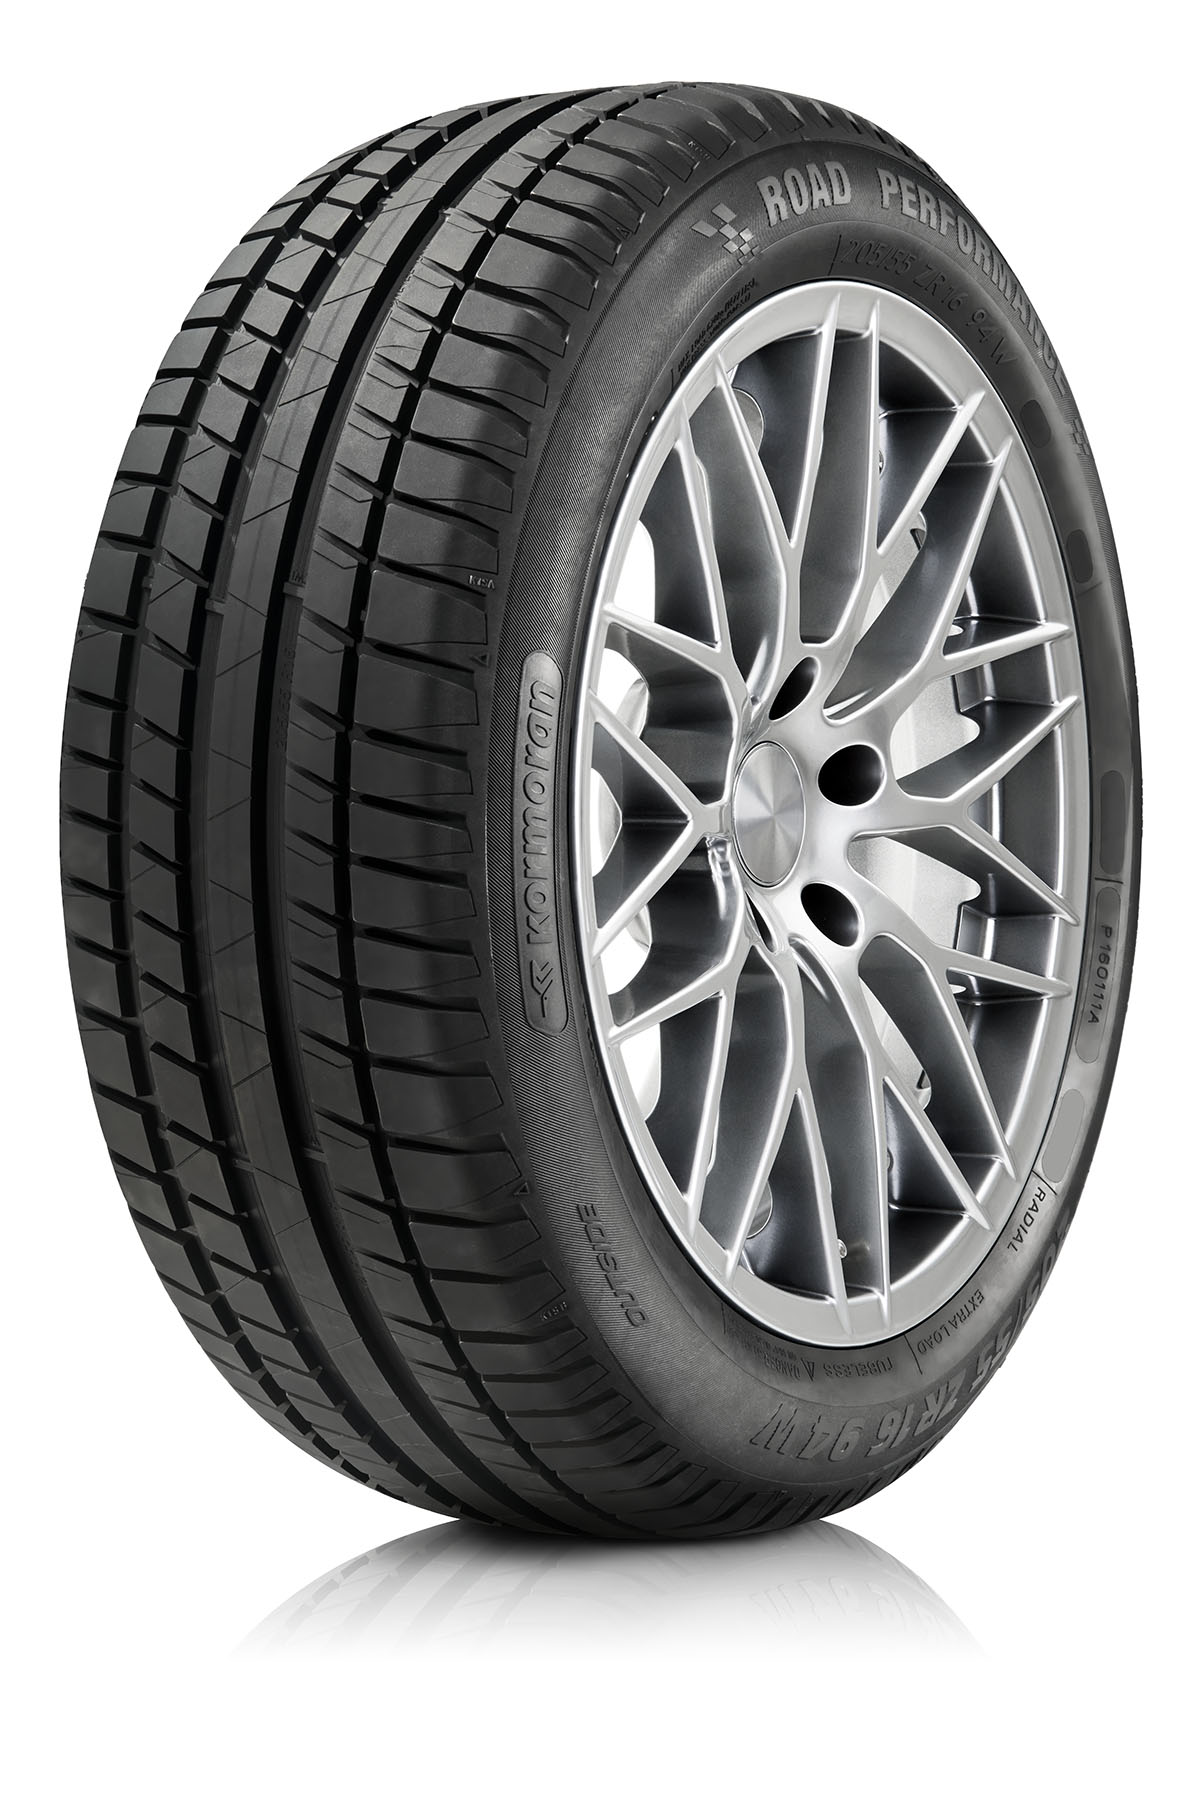 Item 4 summer tires 205/55R16 CORMORANT ROAD PERFORMANCE